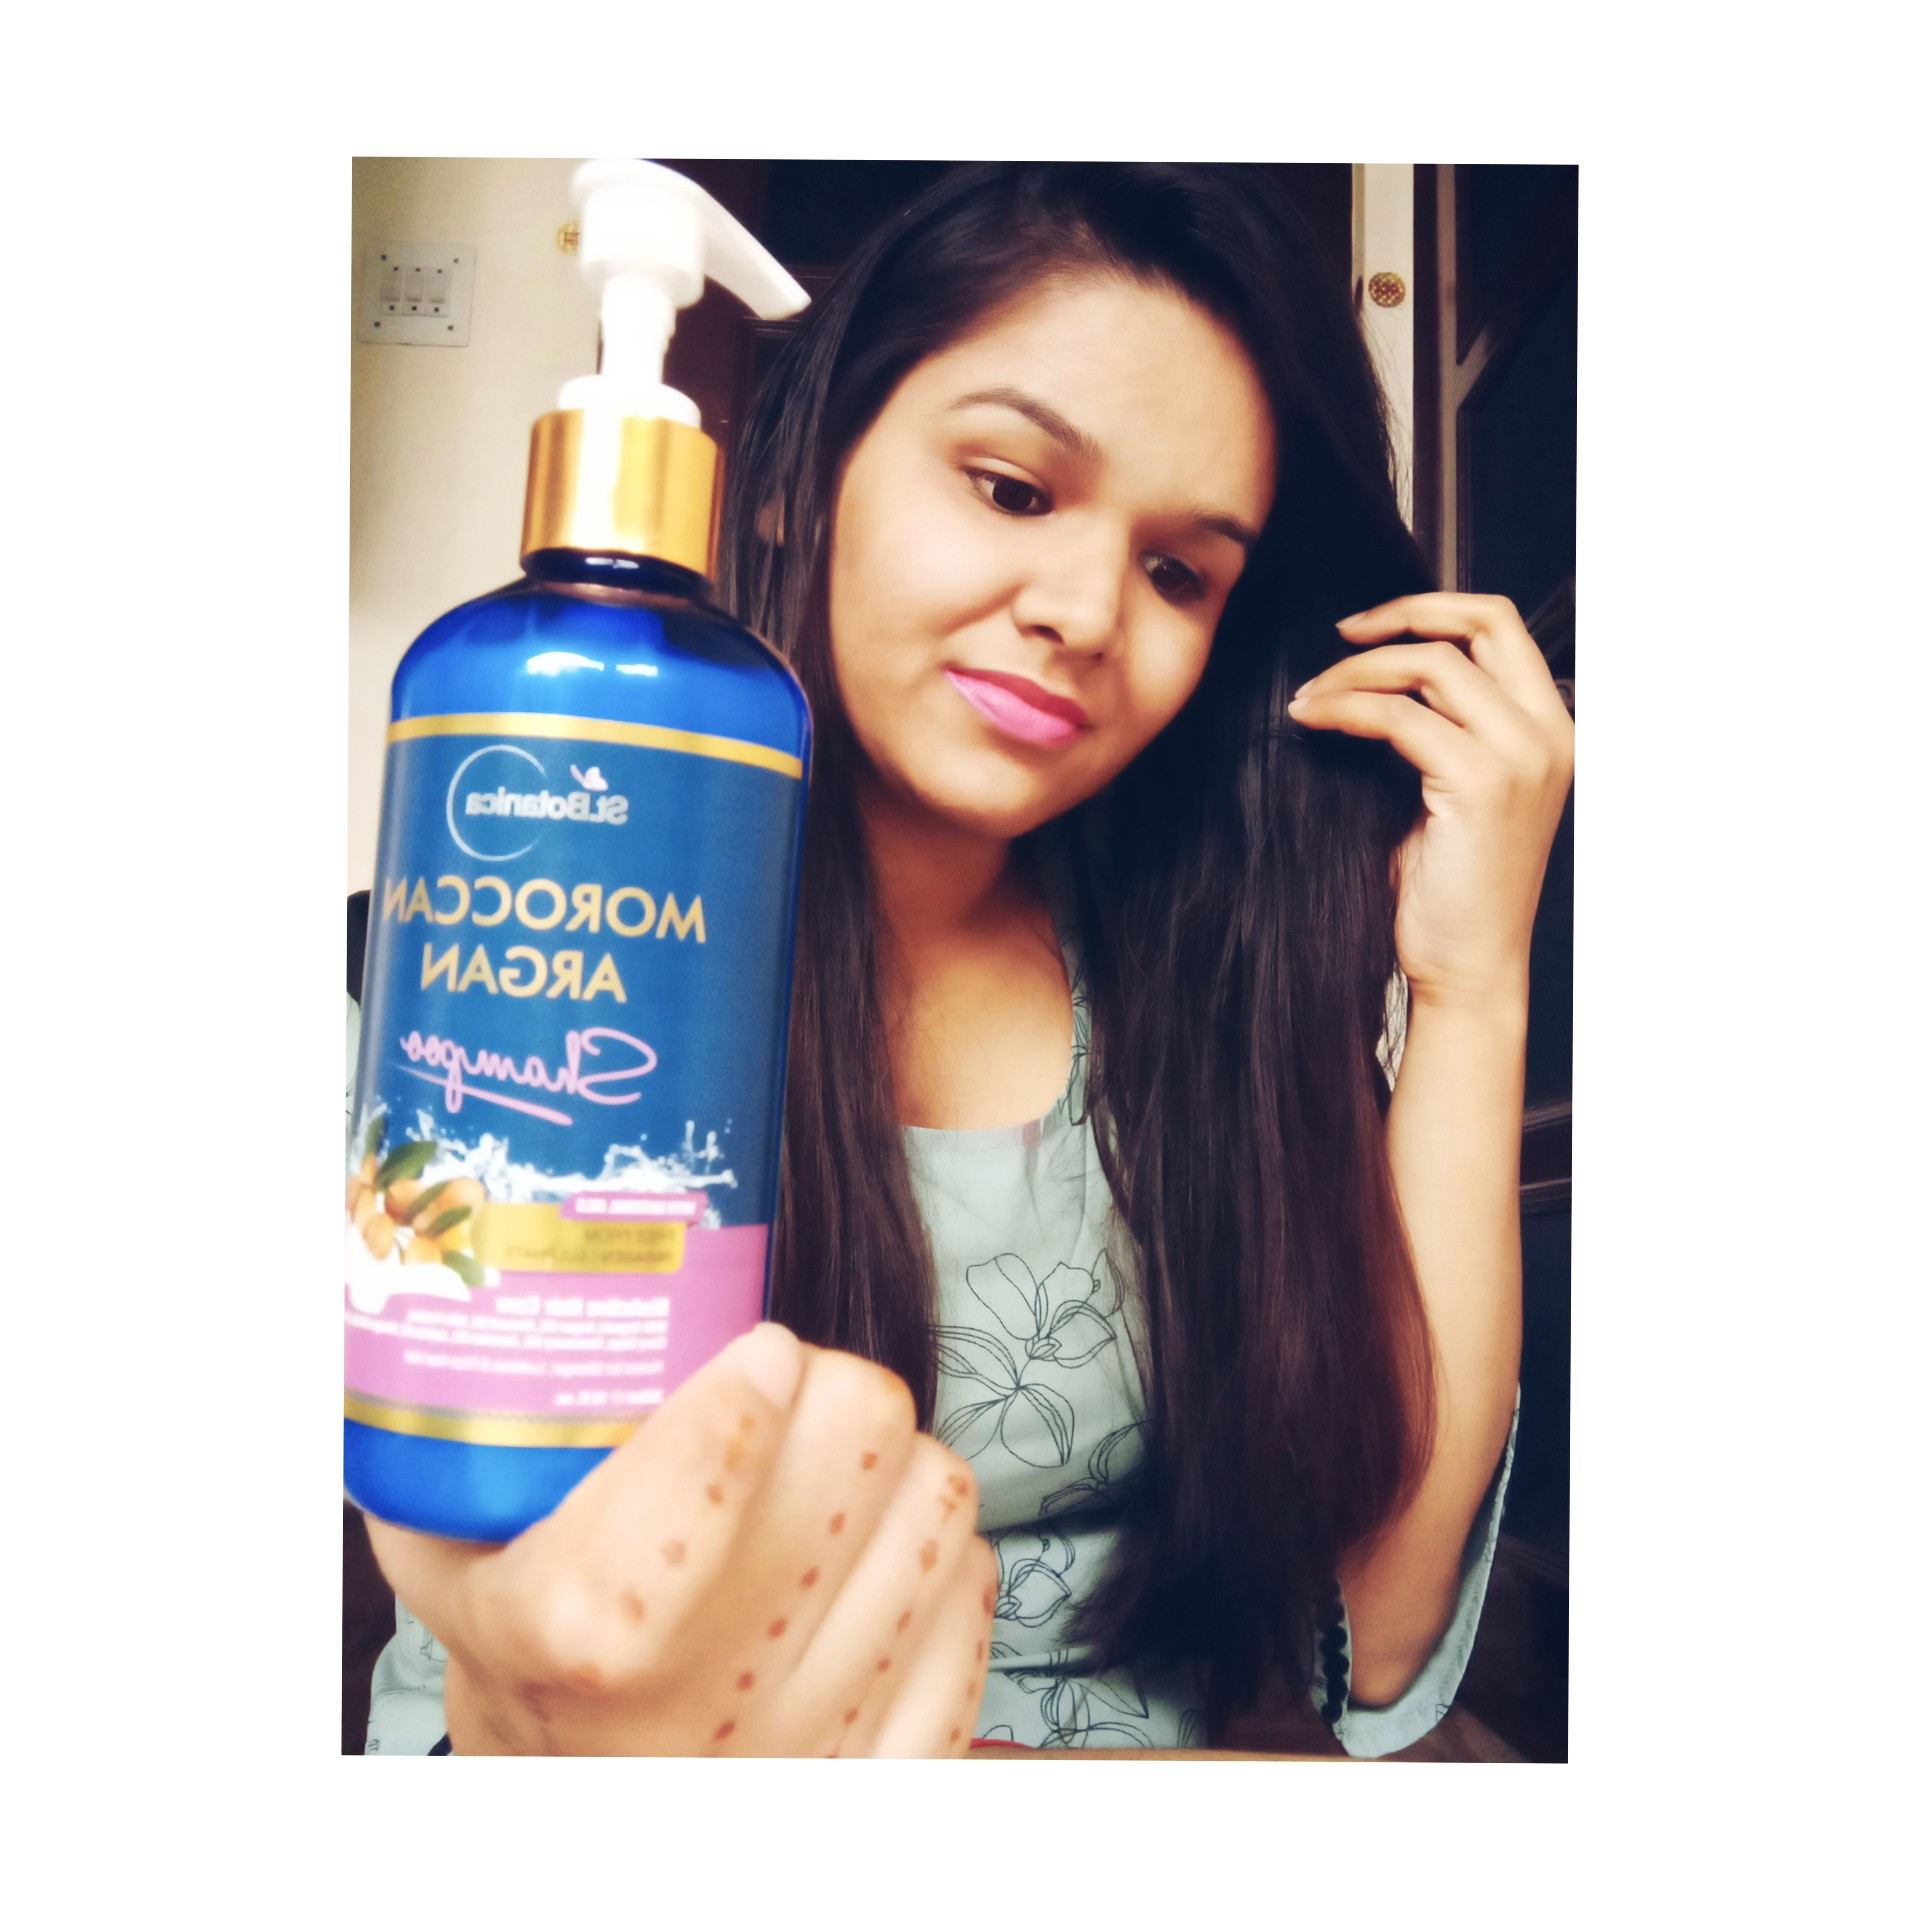 StBotanica Moroccan Argan Hair Shampoo-So good and nice product-By _mansi_shekhawat_